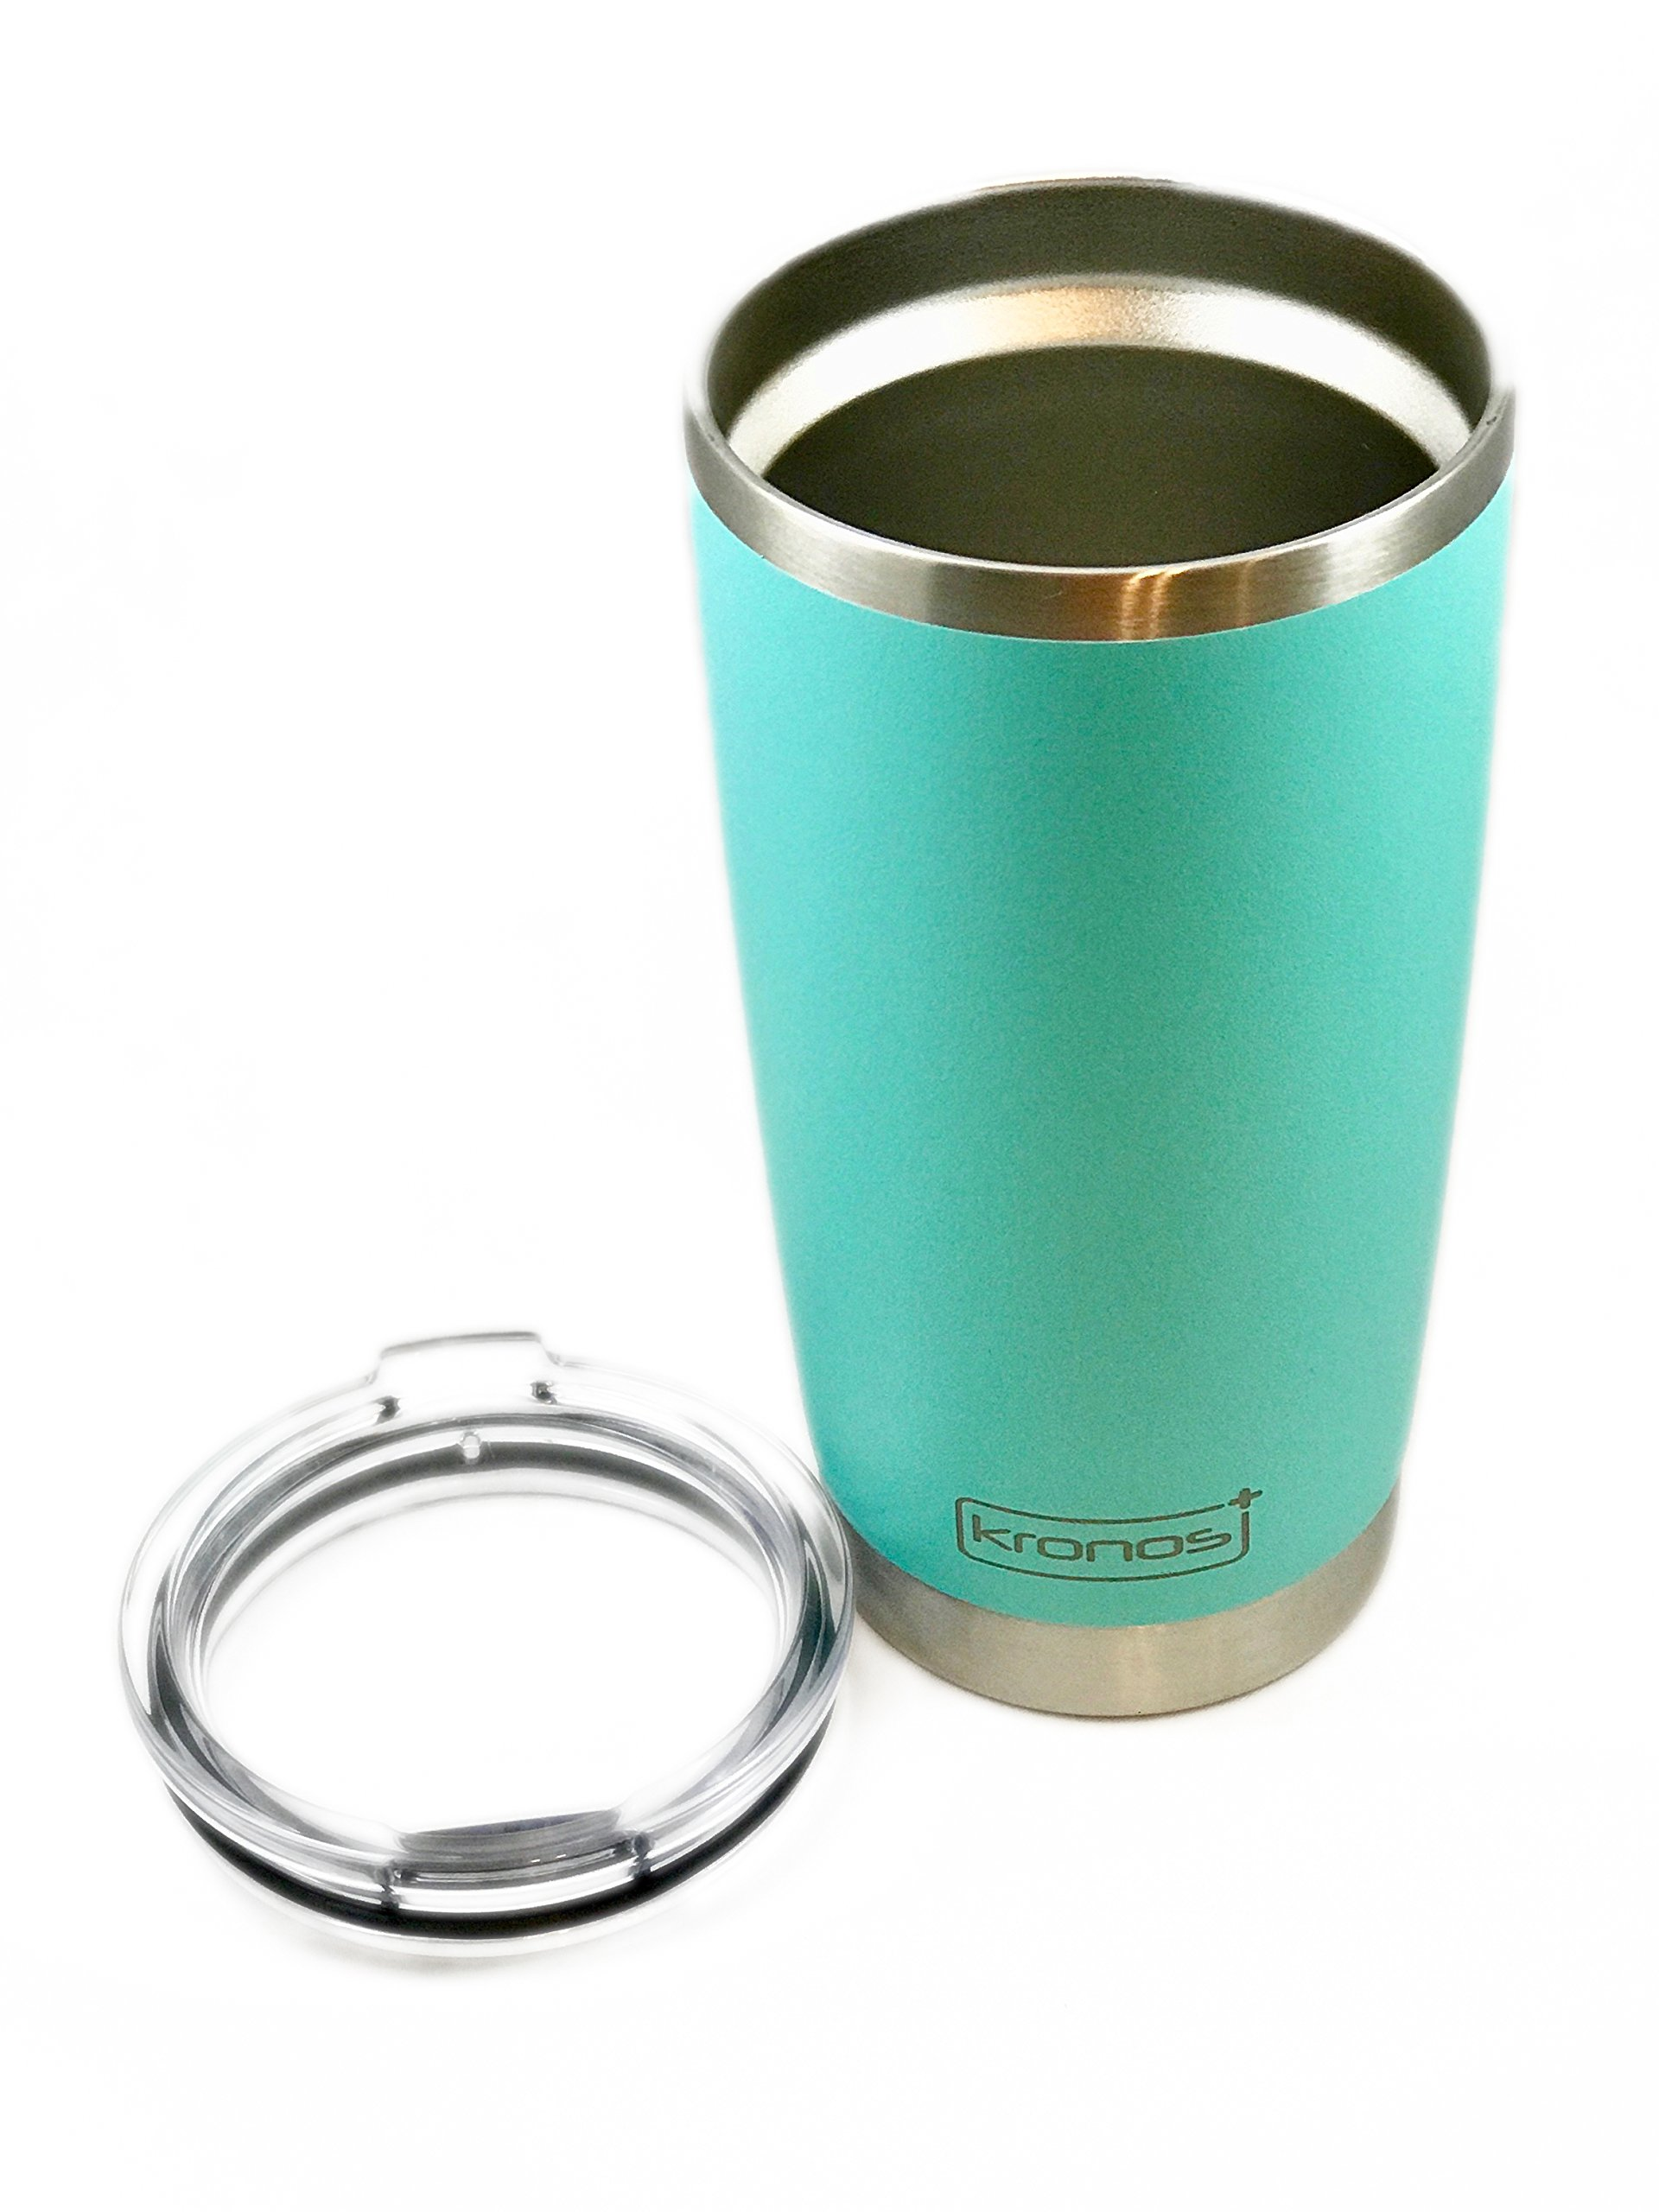 ( SEA FOAM ) Dishwasher Safe 20 oz Vacuum Insulated Thermos with High Quality Matte Finish - Coffee Mug Tumbler by Kronos + (Image #4)